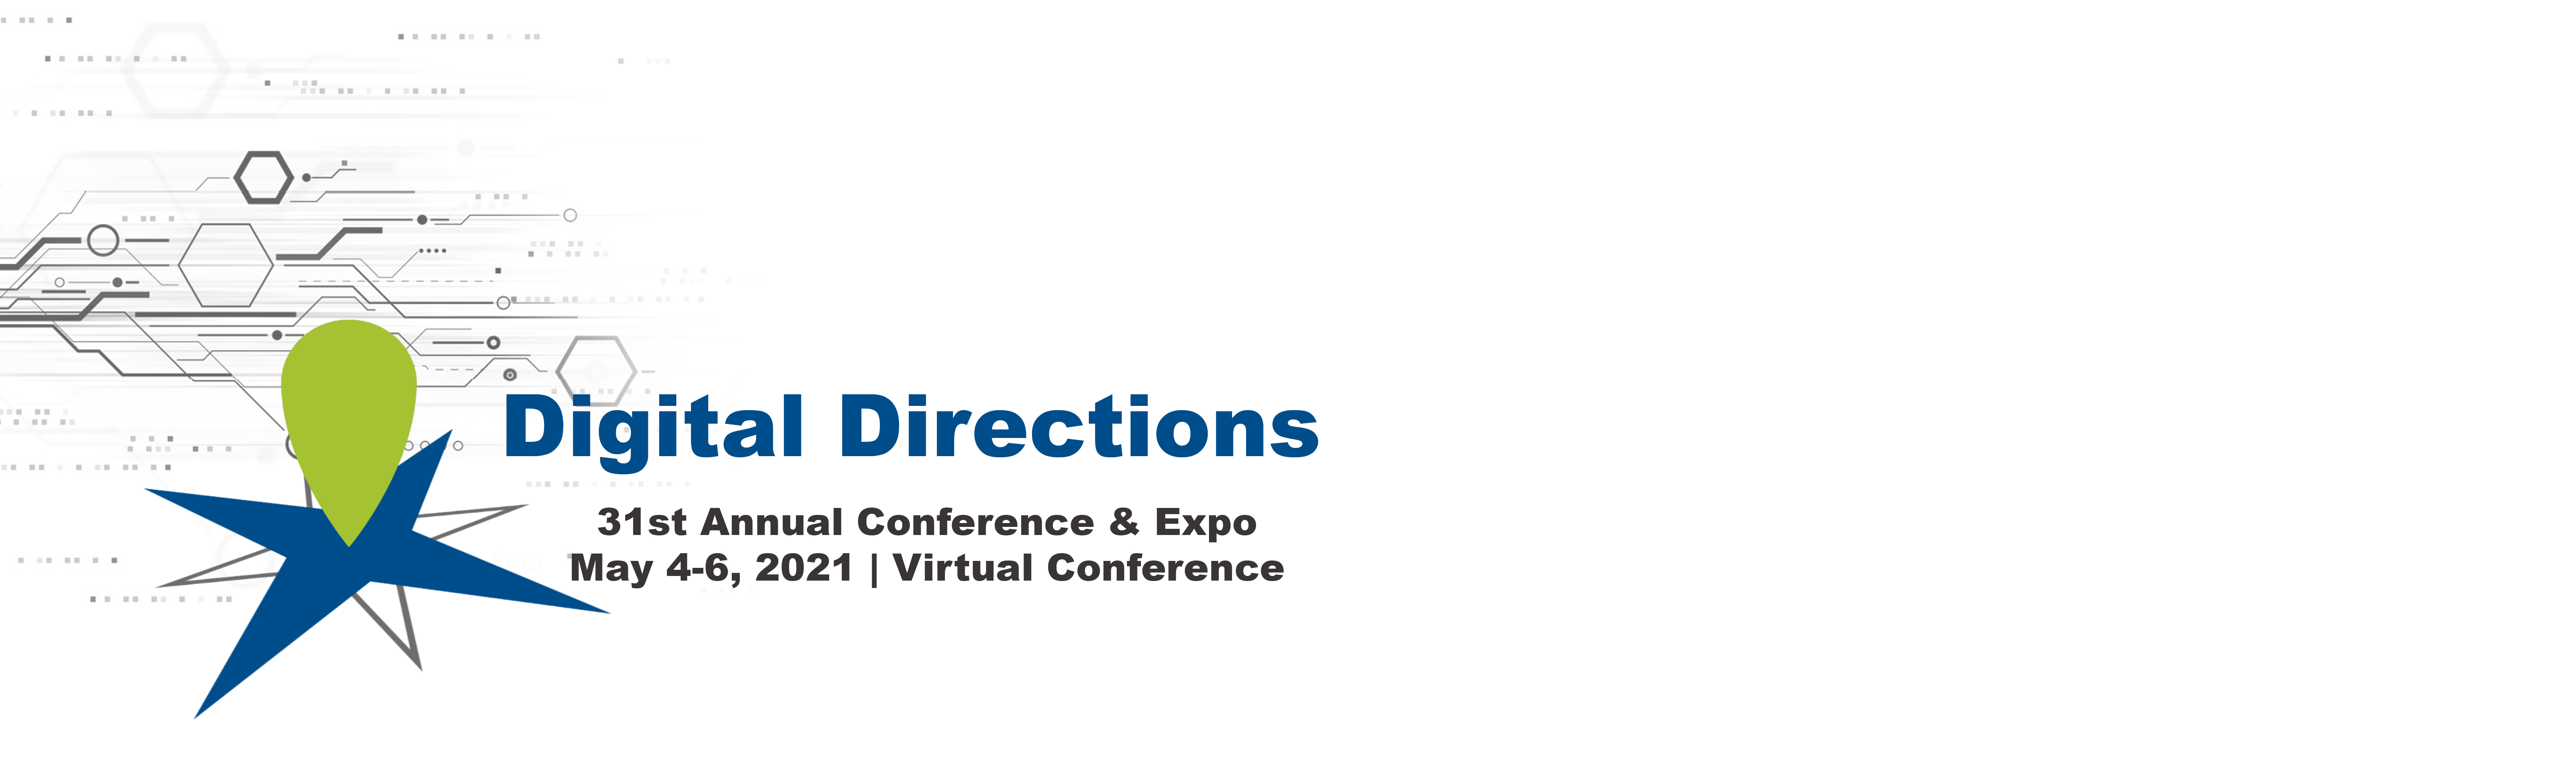 Mark Your Calendars for the 2021 Digital Directions!